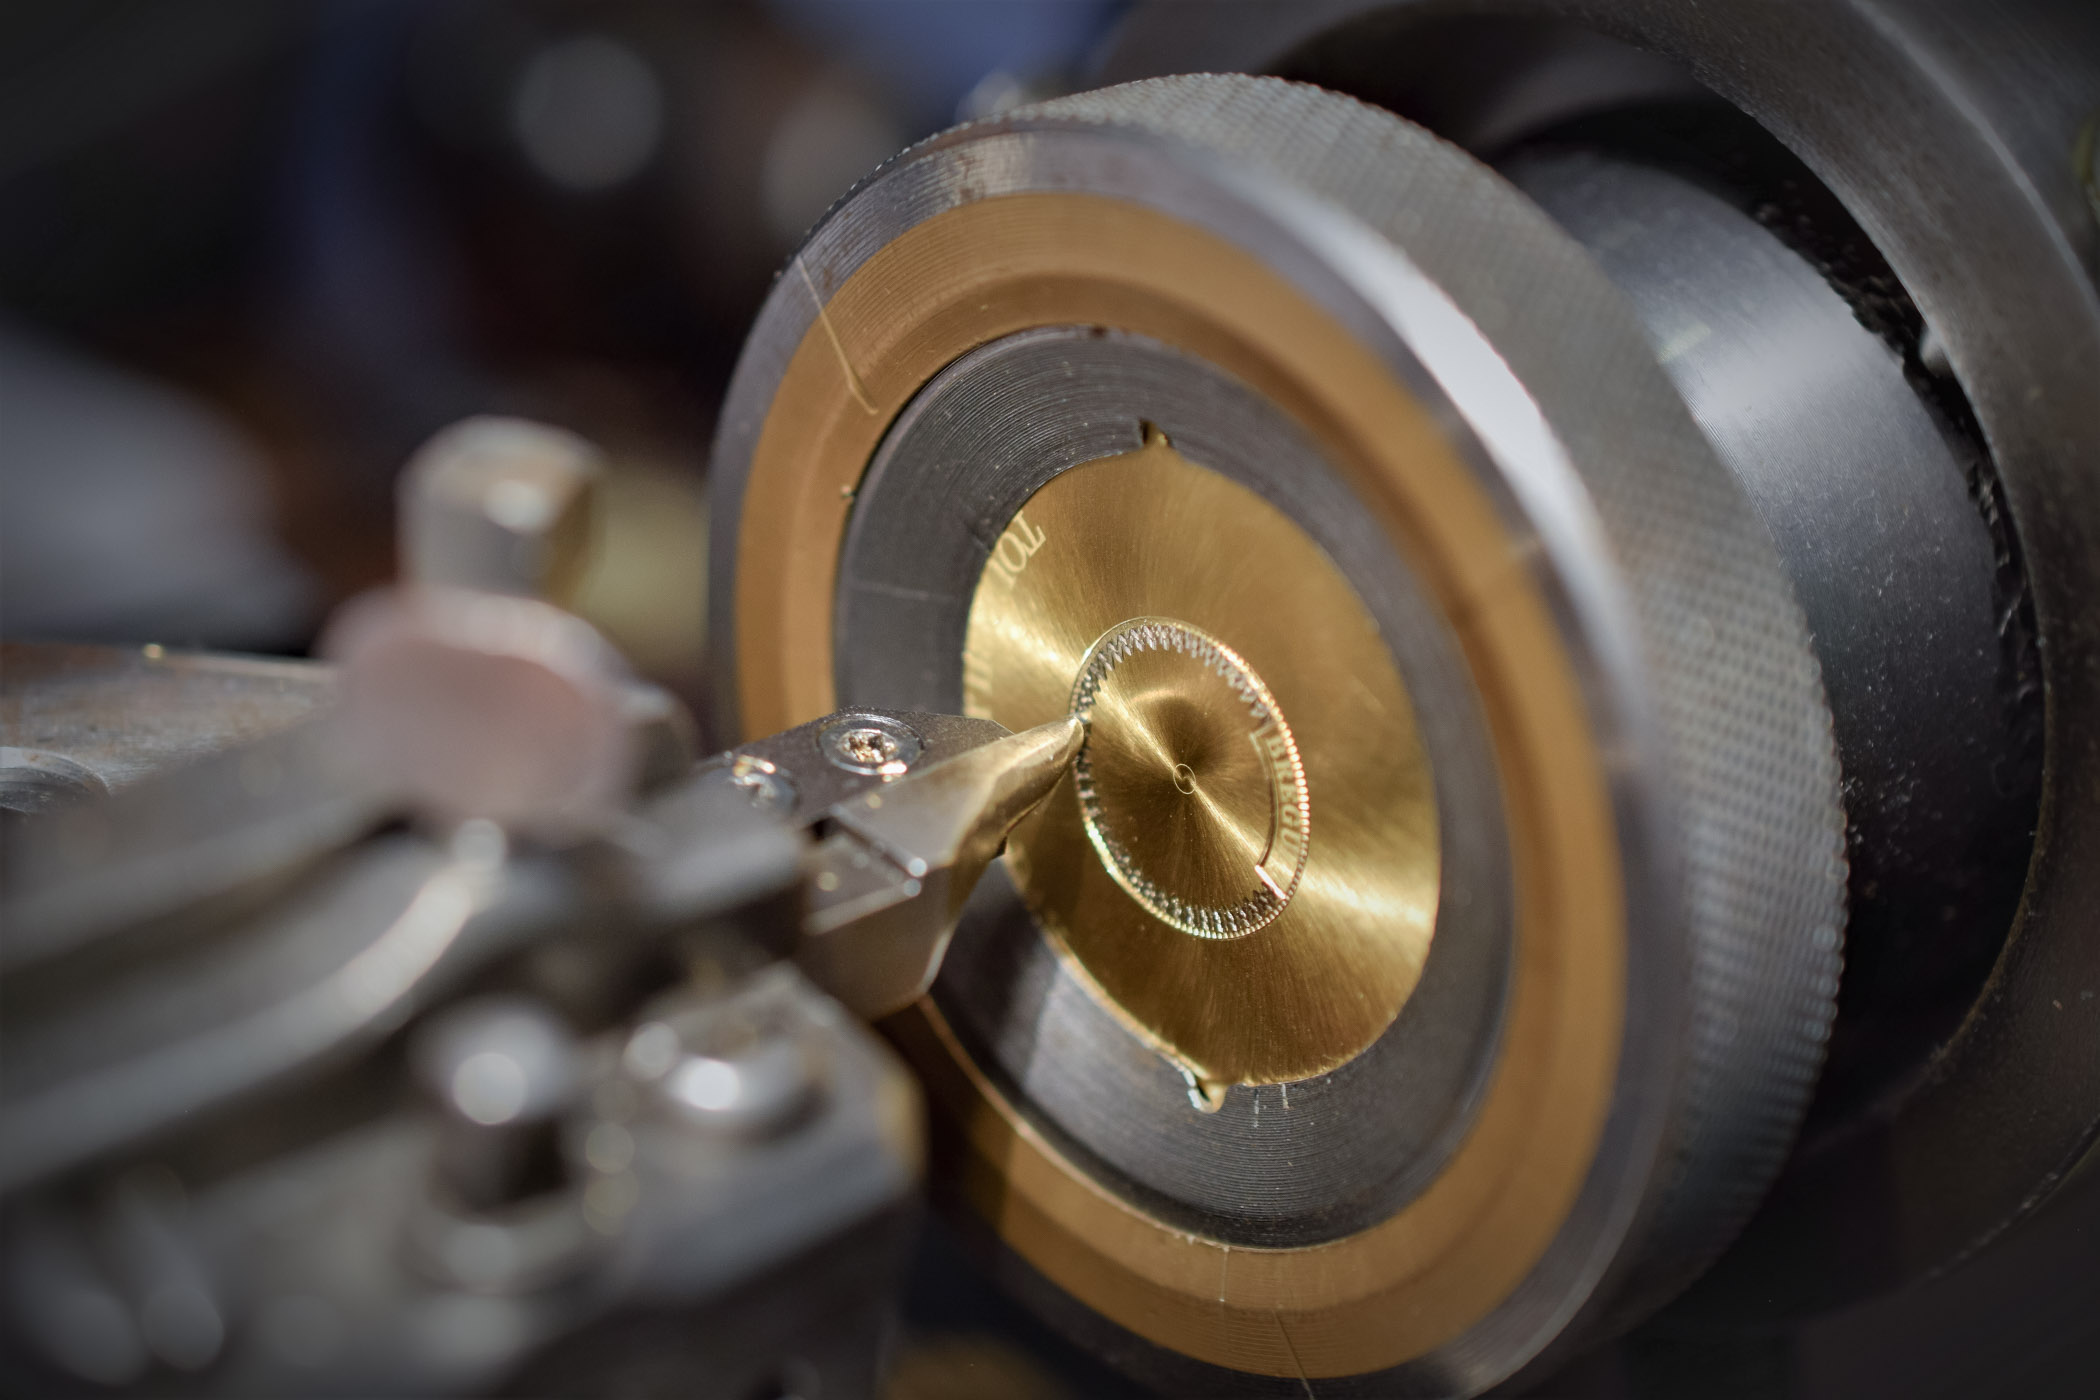 Breguet Guillochage Engine Turning technique in-depth - 4